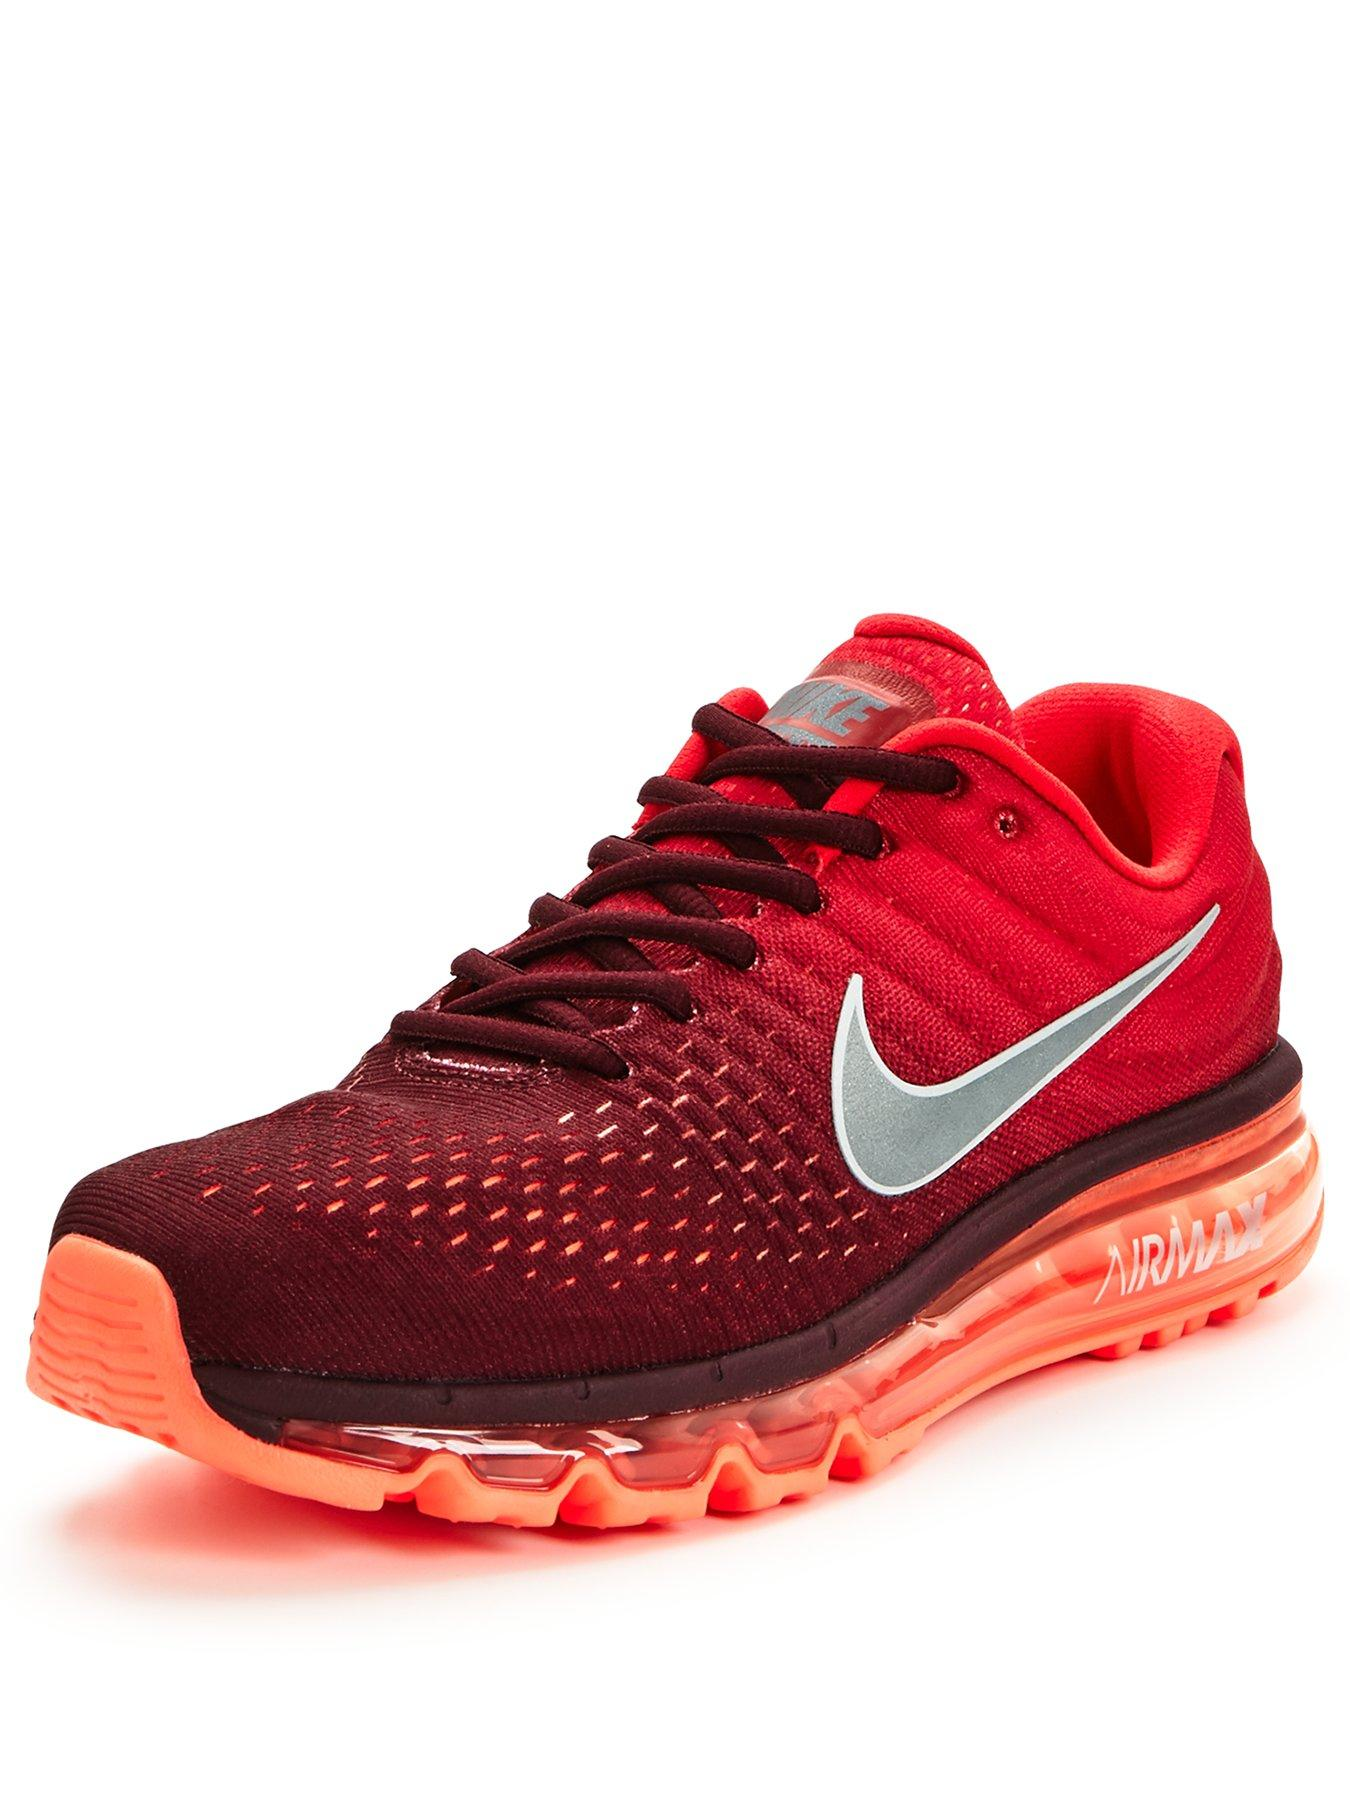 nike air max 2015 very. Black Bedroom Furniture Sets. Home Design Ideas